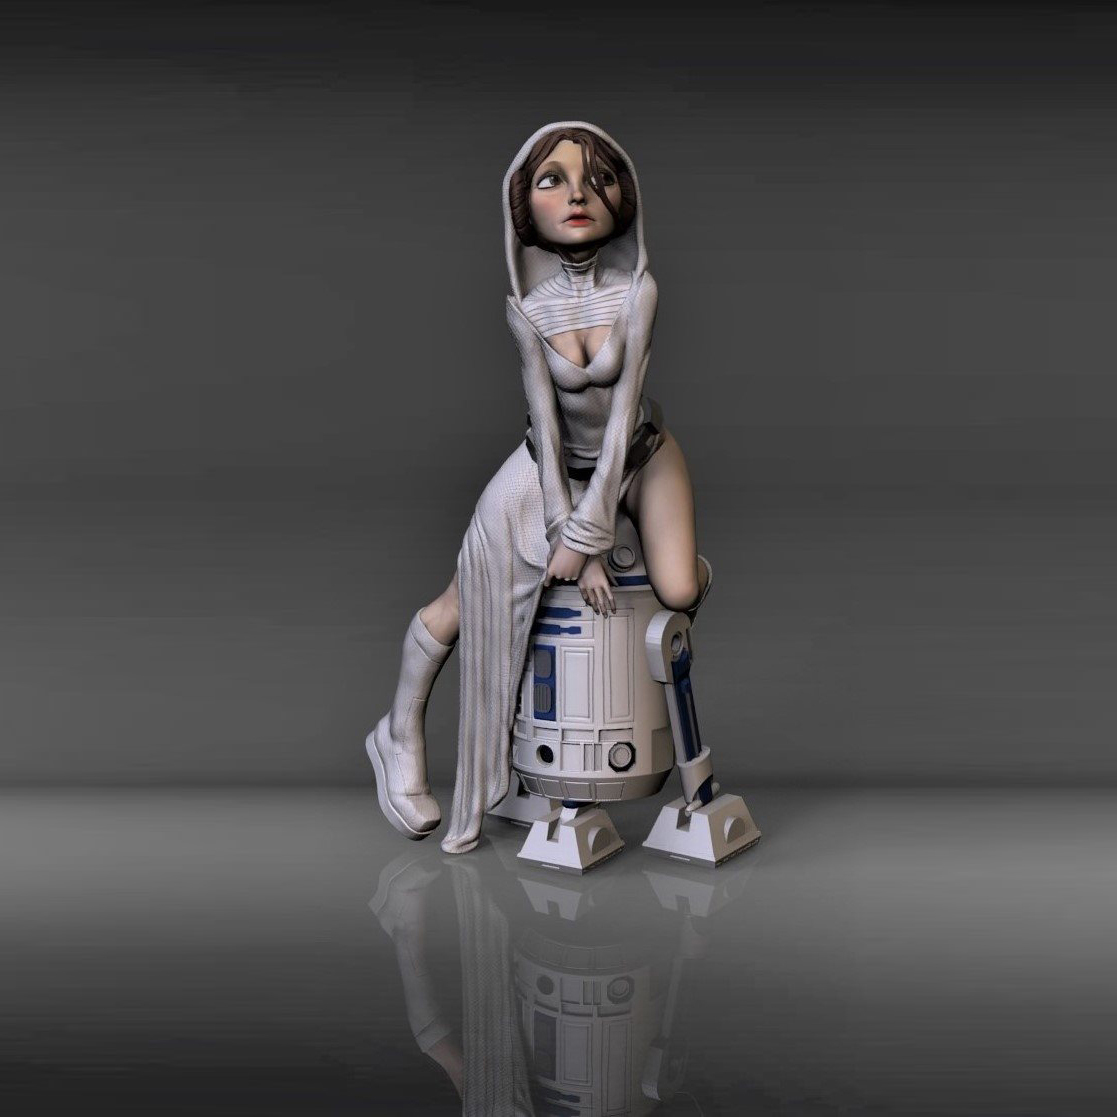 Star Wars R2-D2 with sexy Leia princess - Star Wars Princess Leia sexy and stylized, sitting in R2D2, based on Brett Nienburg's concept art - The best files for 3D printing in the world. Stl models divided into parts to facilitate 3D printing. All kinds of characters, decoration, cosplay, prosthetics, pieces. Quality in 3D printing. Affordable 3D models. Low cost. Collective purchases of 3D files.